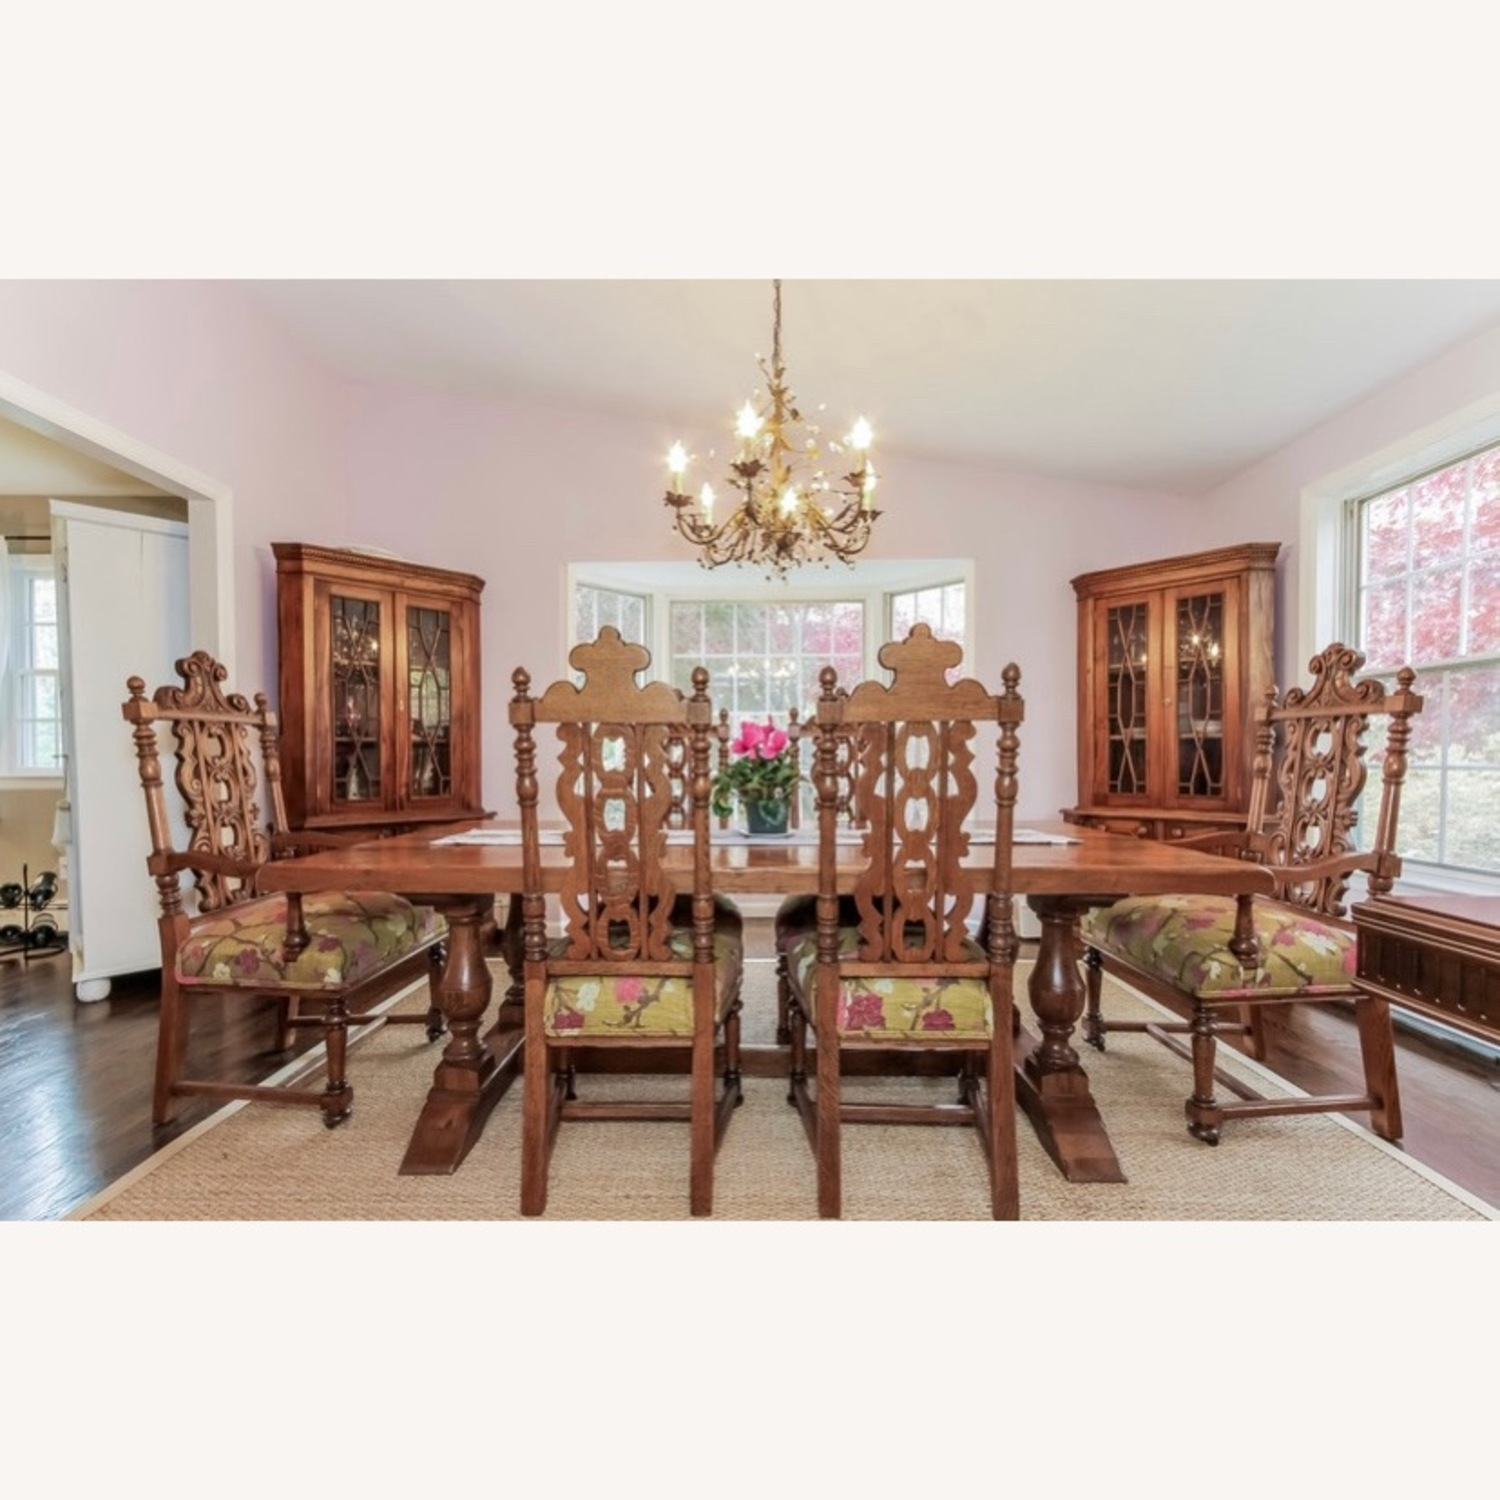 Imported French Rustic Dining Table - image-1